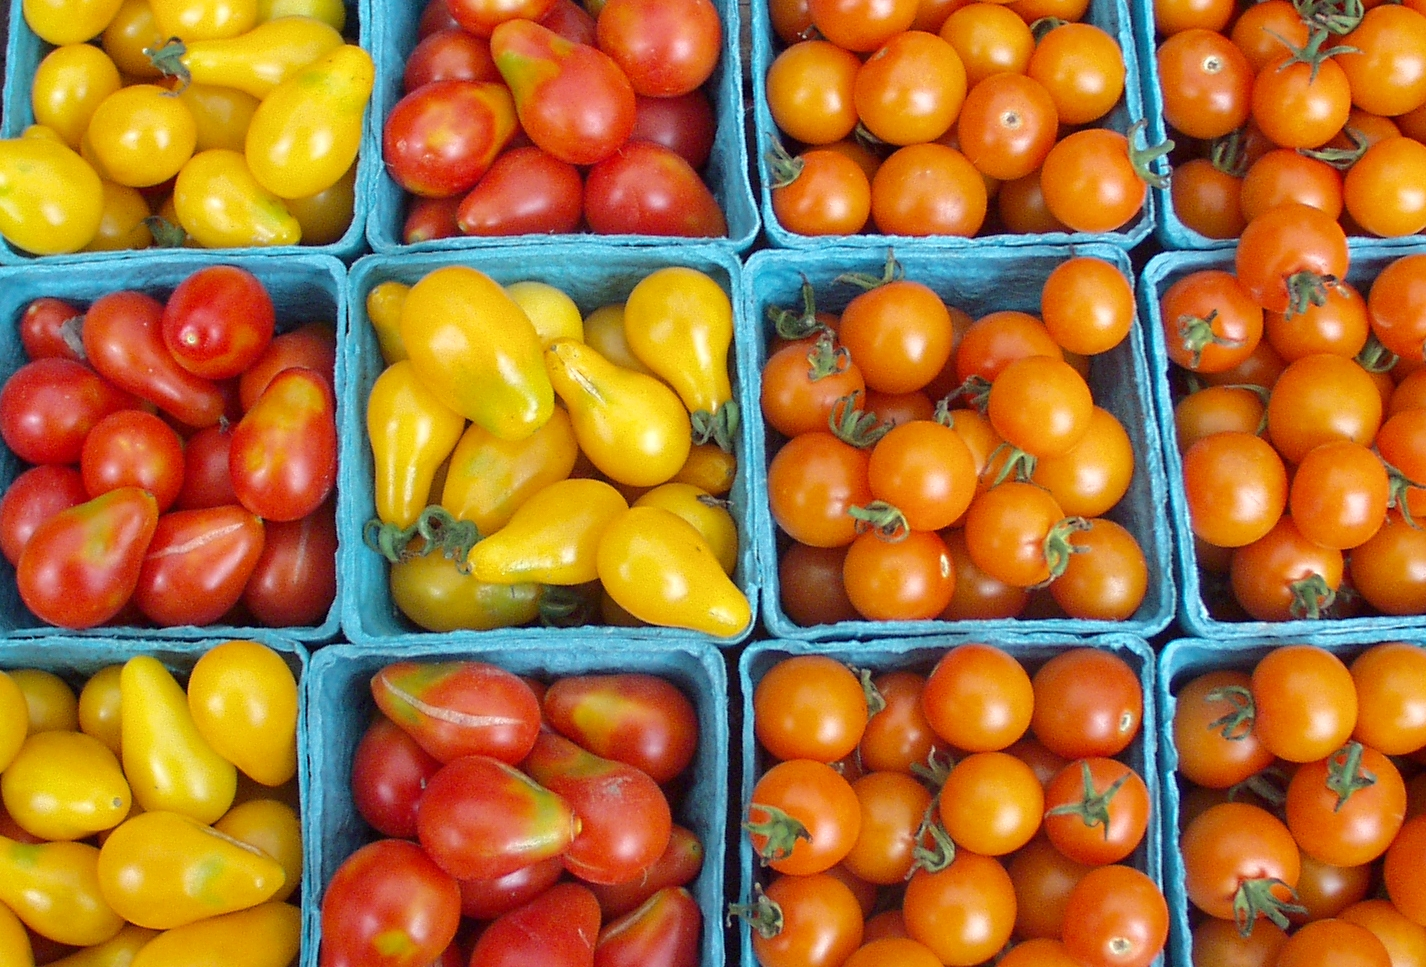 Various cherry tomatoes from Nature's Last Stand. Photo copyright 2009 by Zachary D. Lyons.